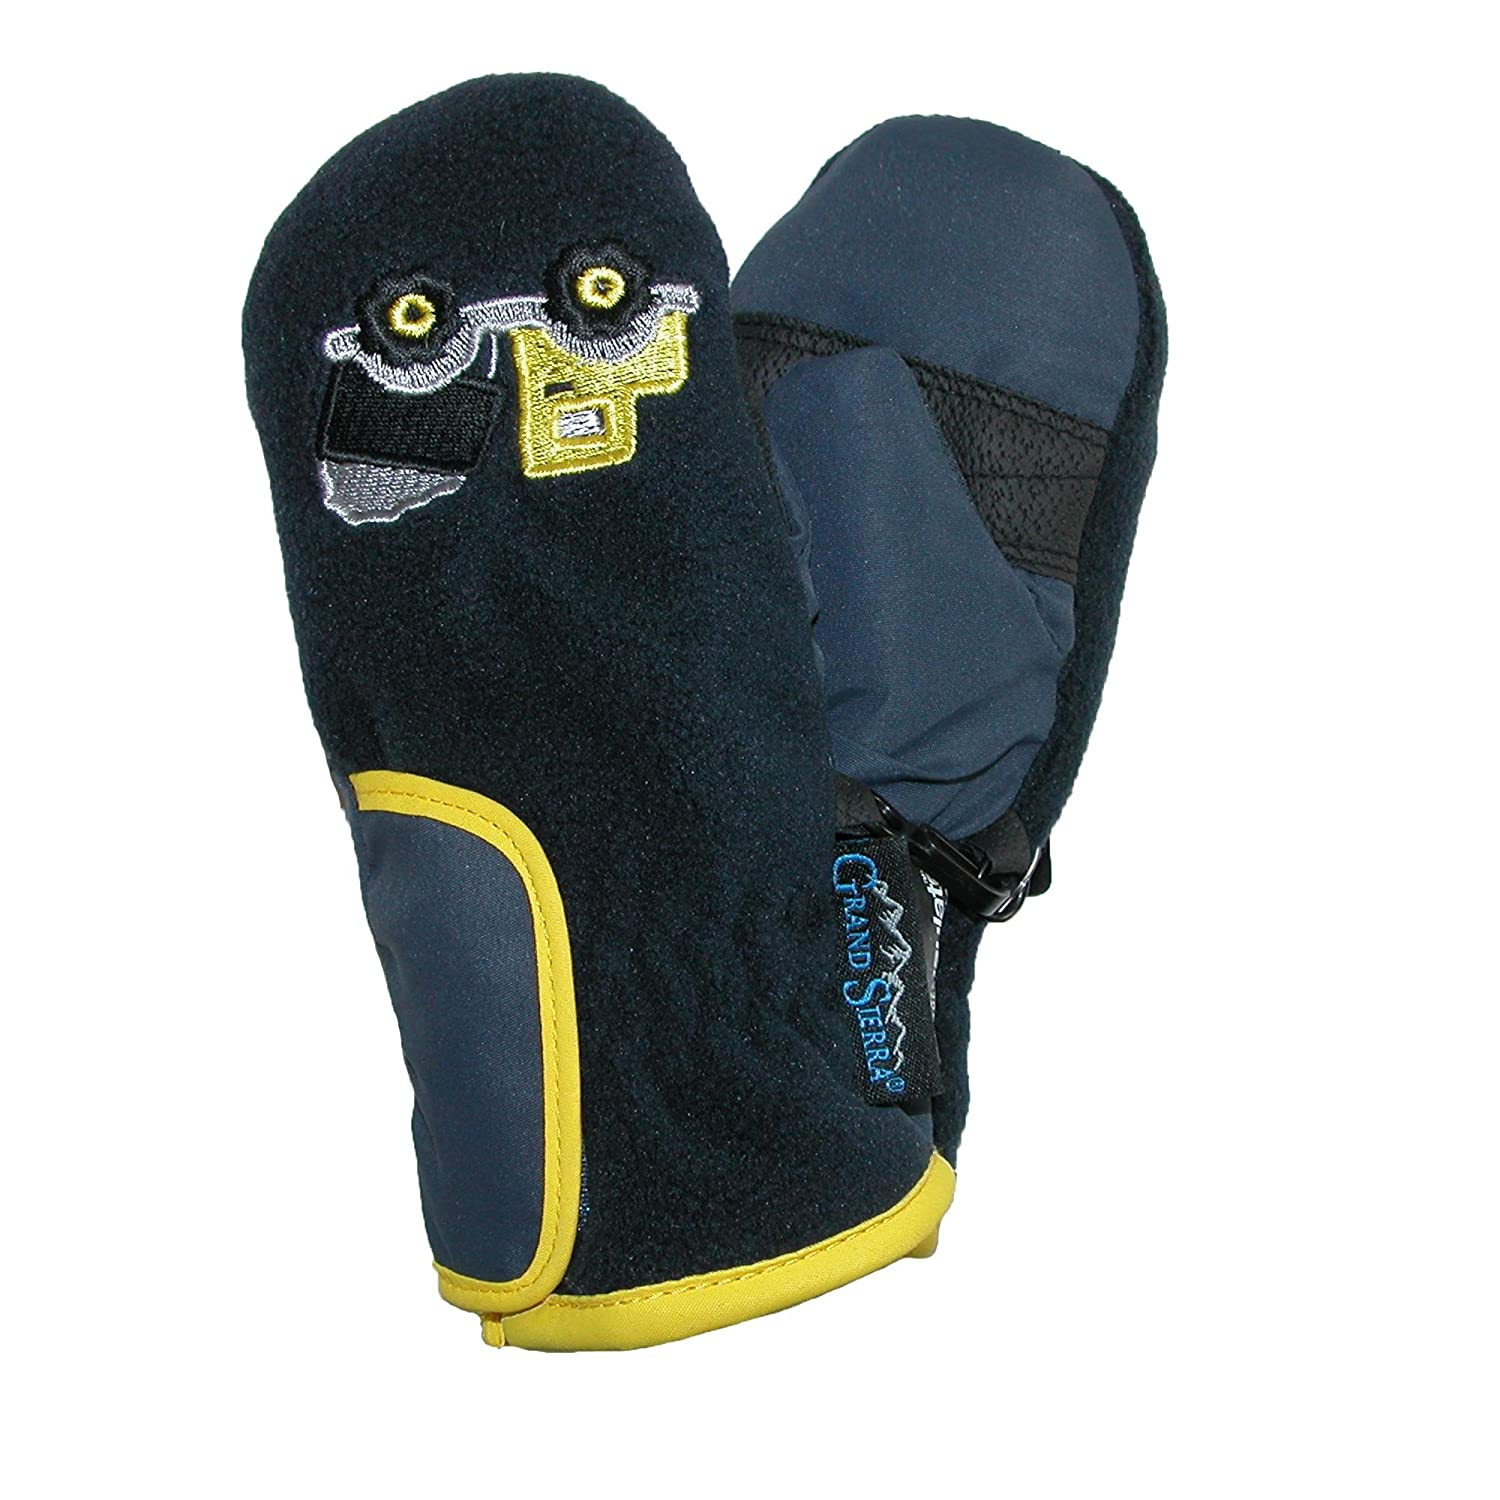 Grand Sierra Toddlers 2-4 Embroidered Waterproof Mittens Black with Motorcycles